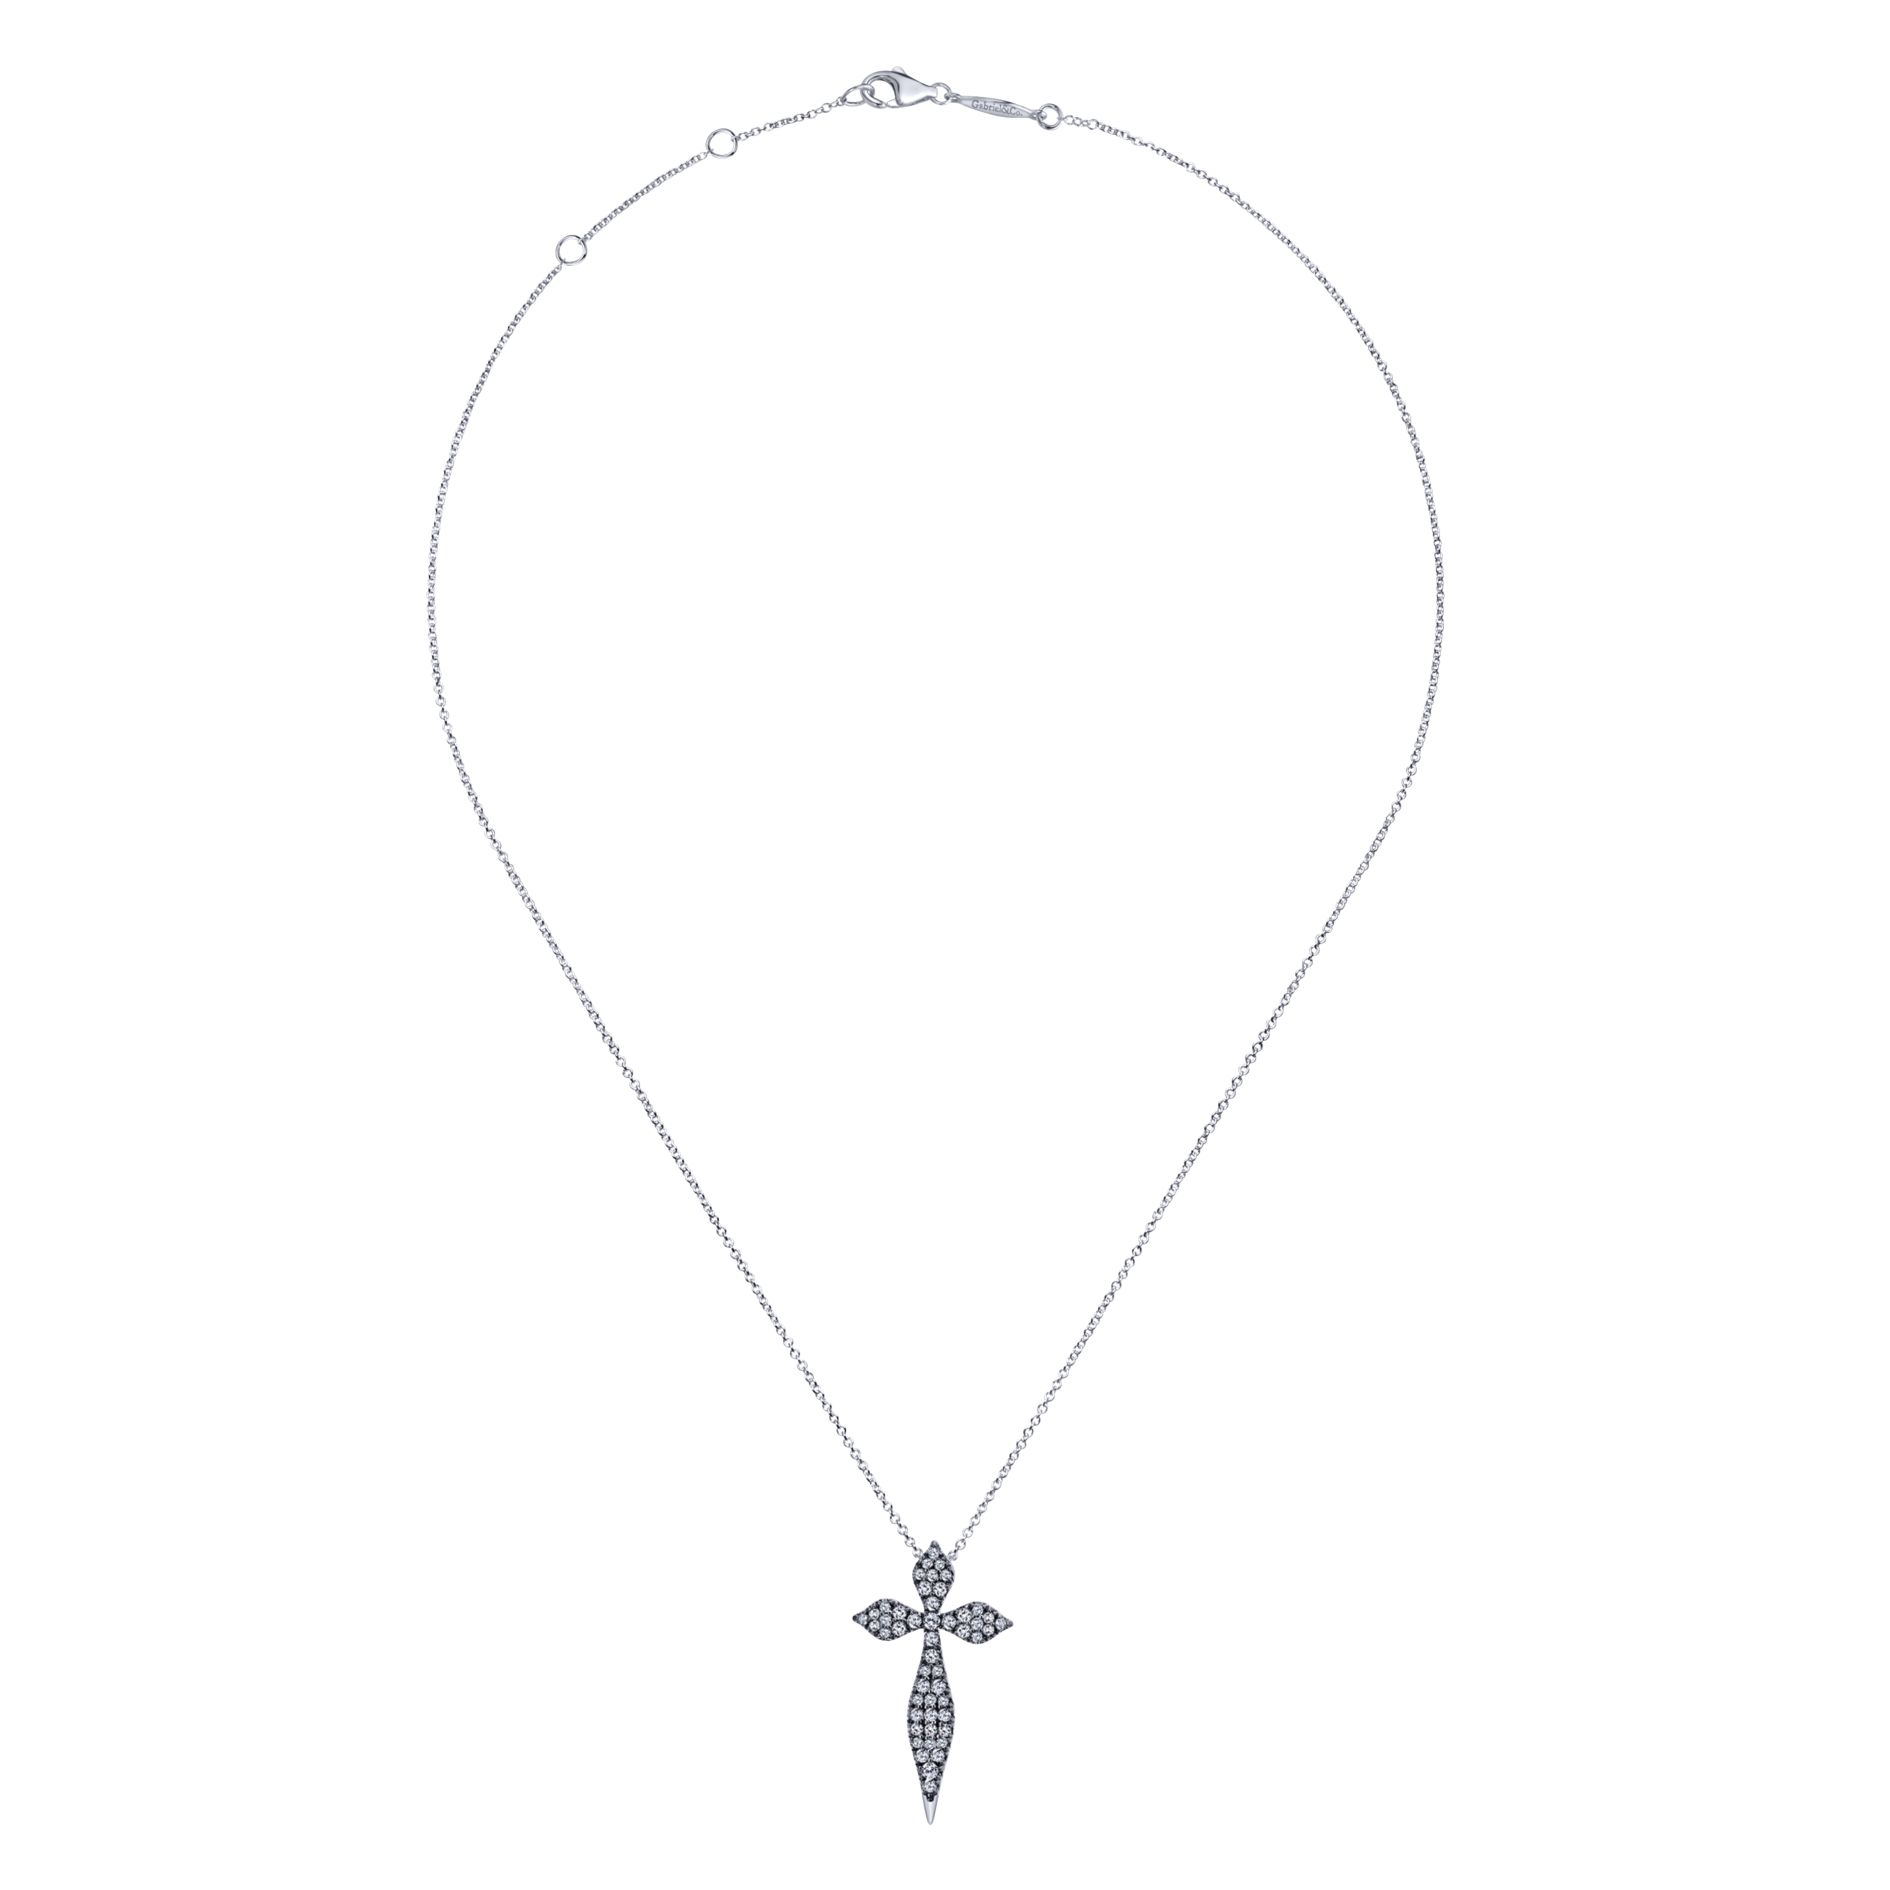 Necklaces - SILVER CROSS WHITE SAPPHIRE NECKLACE - image #2